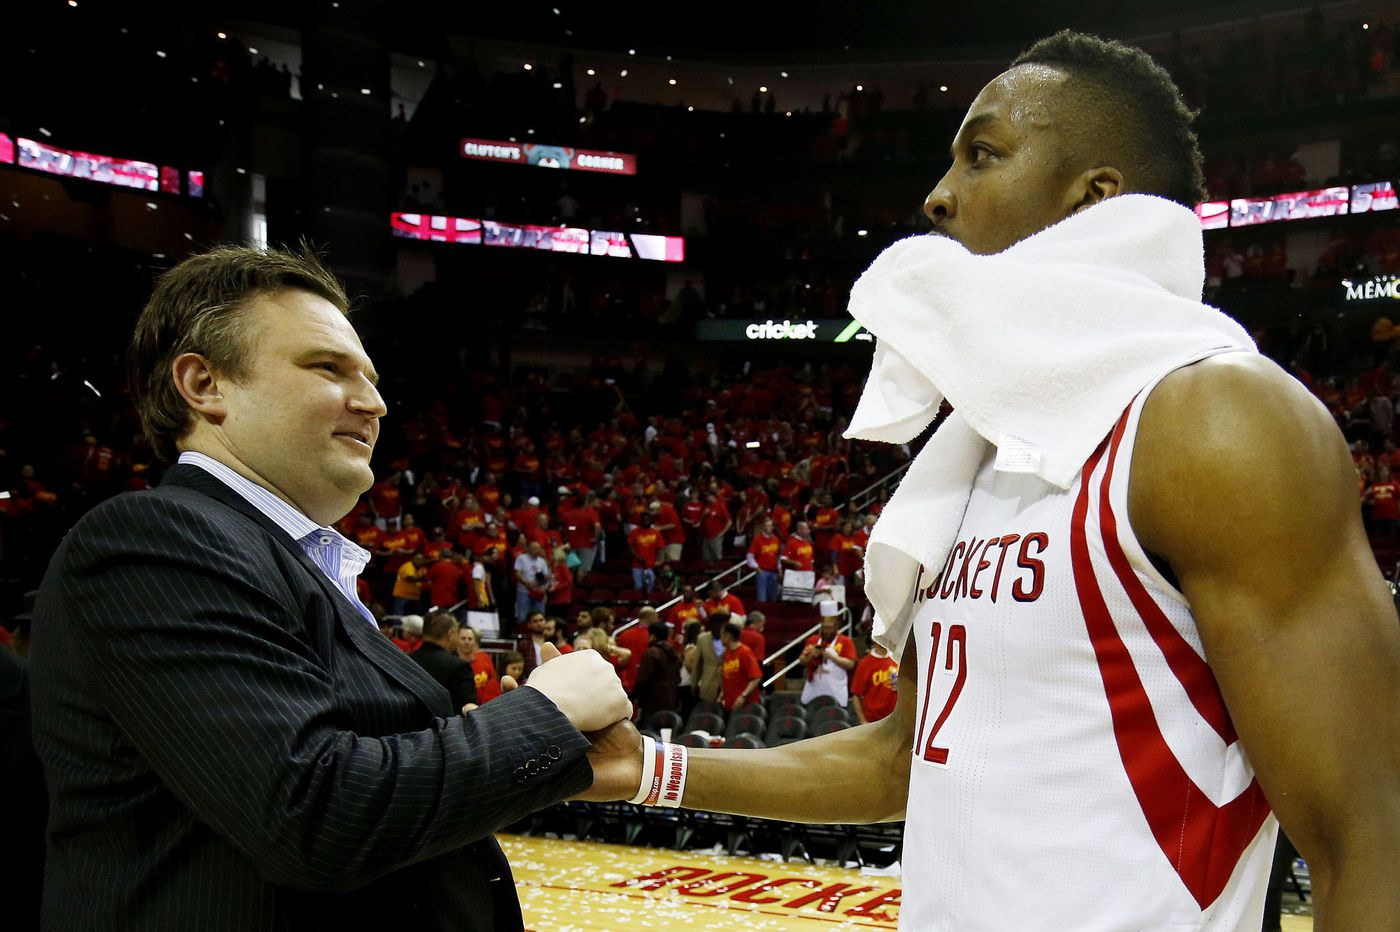 Dwight Howard agrees to a one-year deal with the Sixers and reunites with Daryl Morey